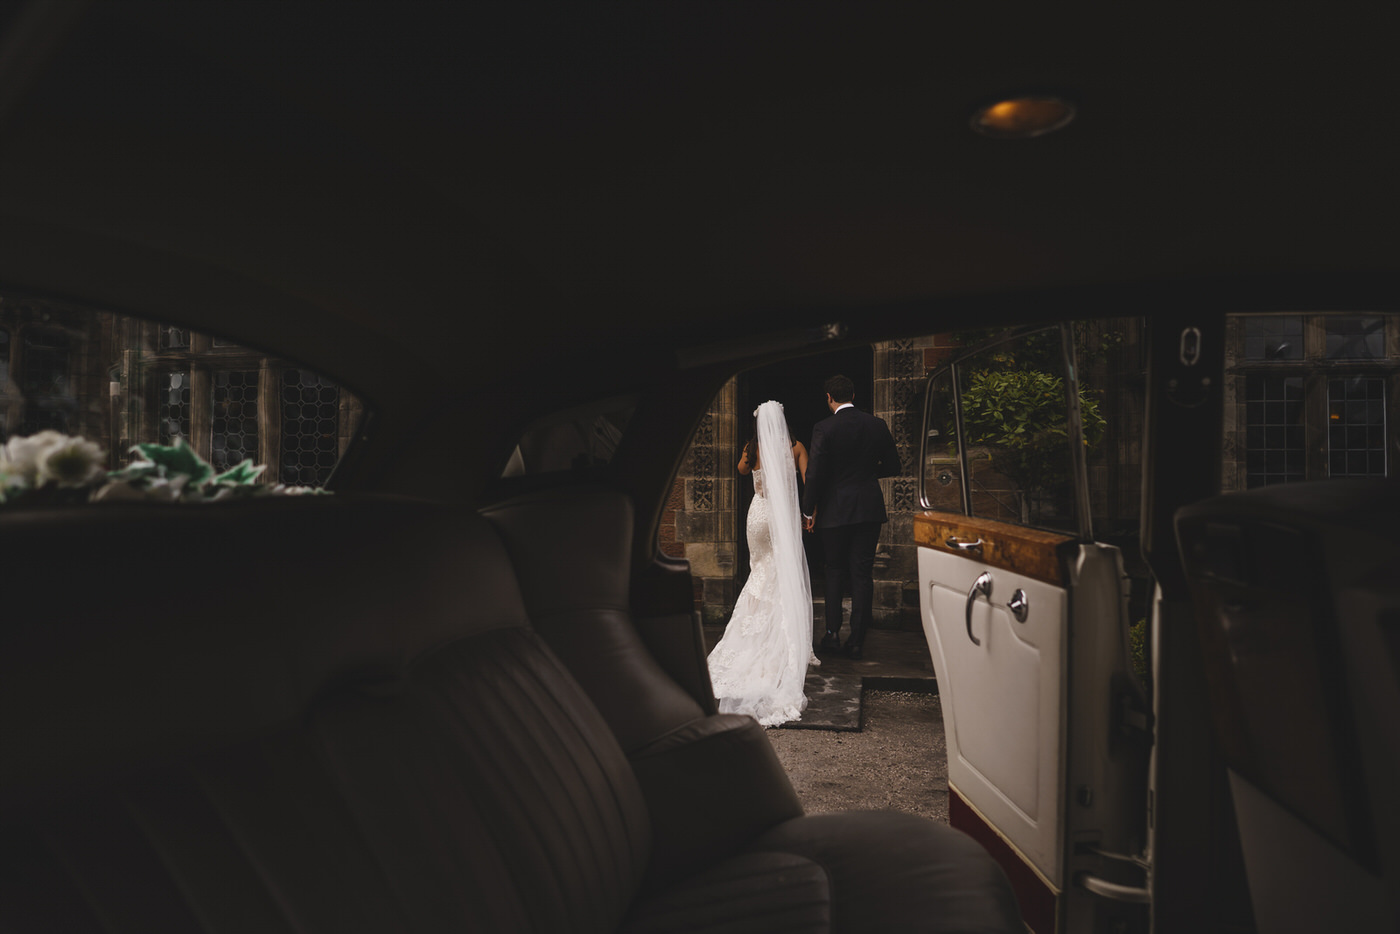 the wedding car creates a frame for the bride and groom as they enter Thornton Manor